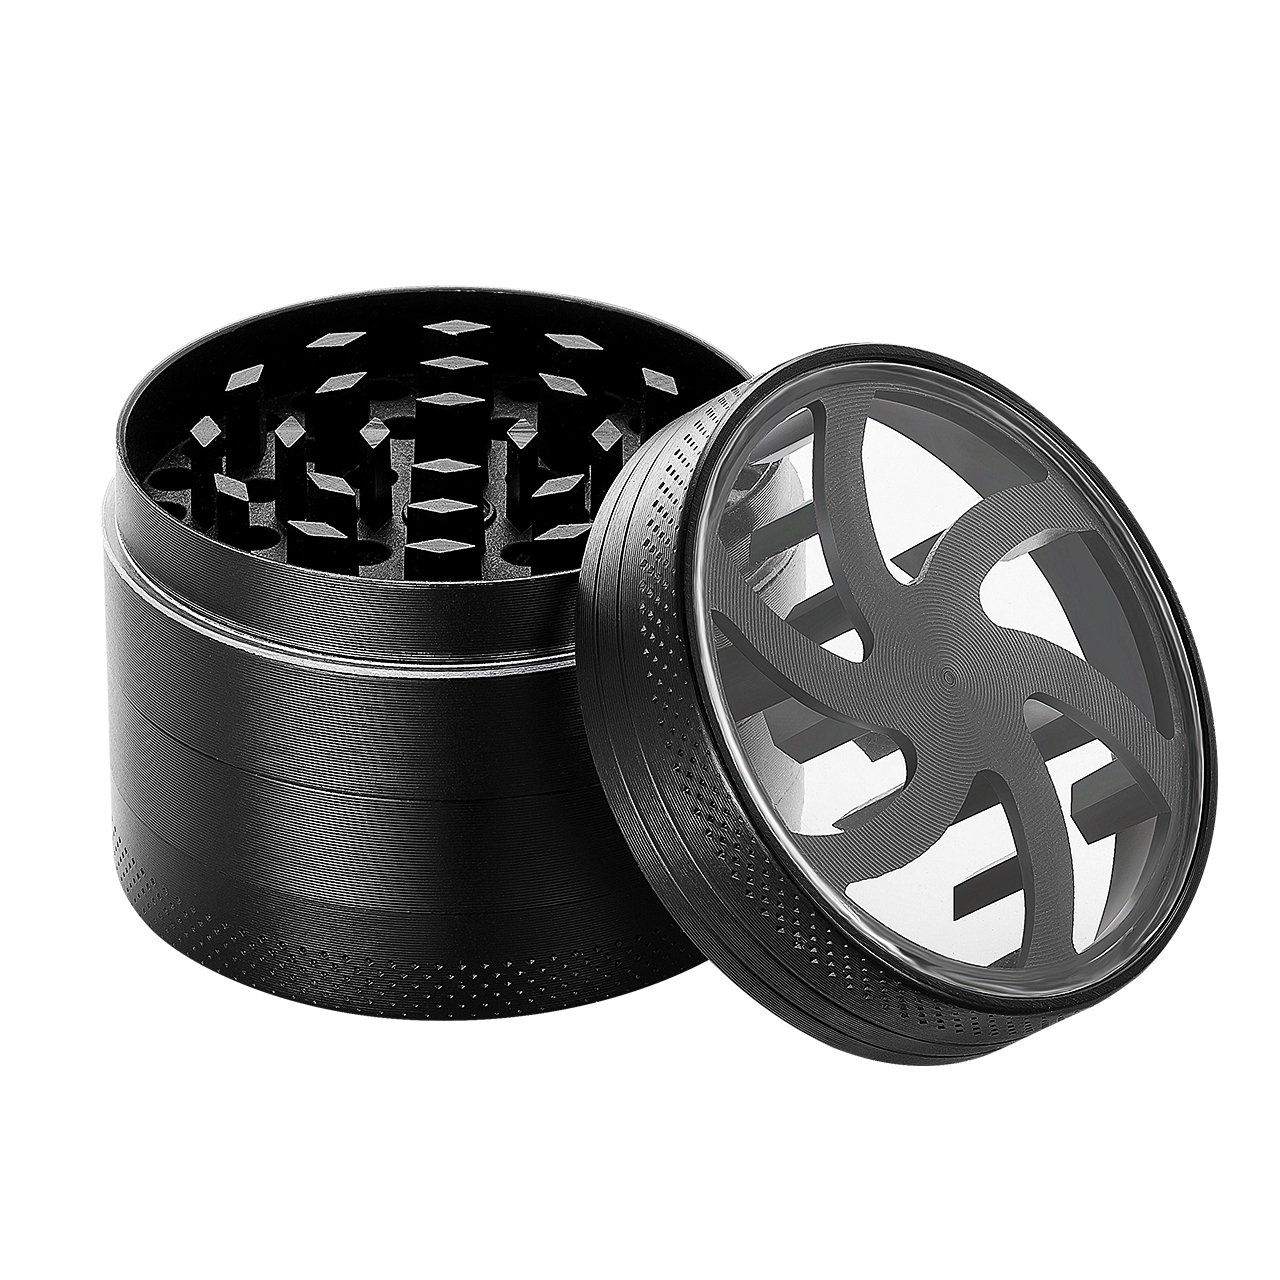 [Upgraded Version] TOPELEK Spice Herb Grinder, 4-Layer 3-Chamber Zinc Alloy Pollen Grinder with Pollen Scraper,A Unique Cabinet Door for Easy Collection,Black